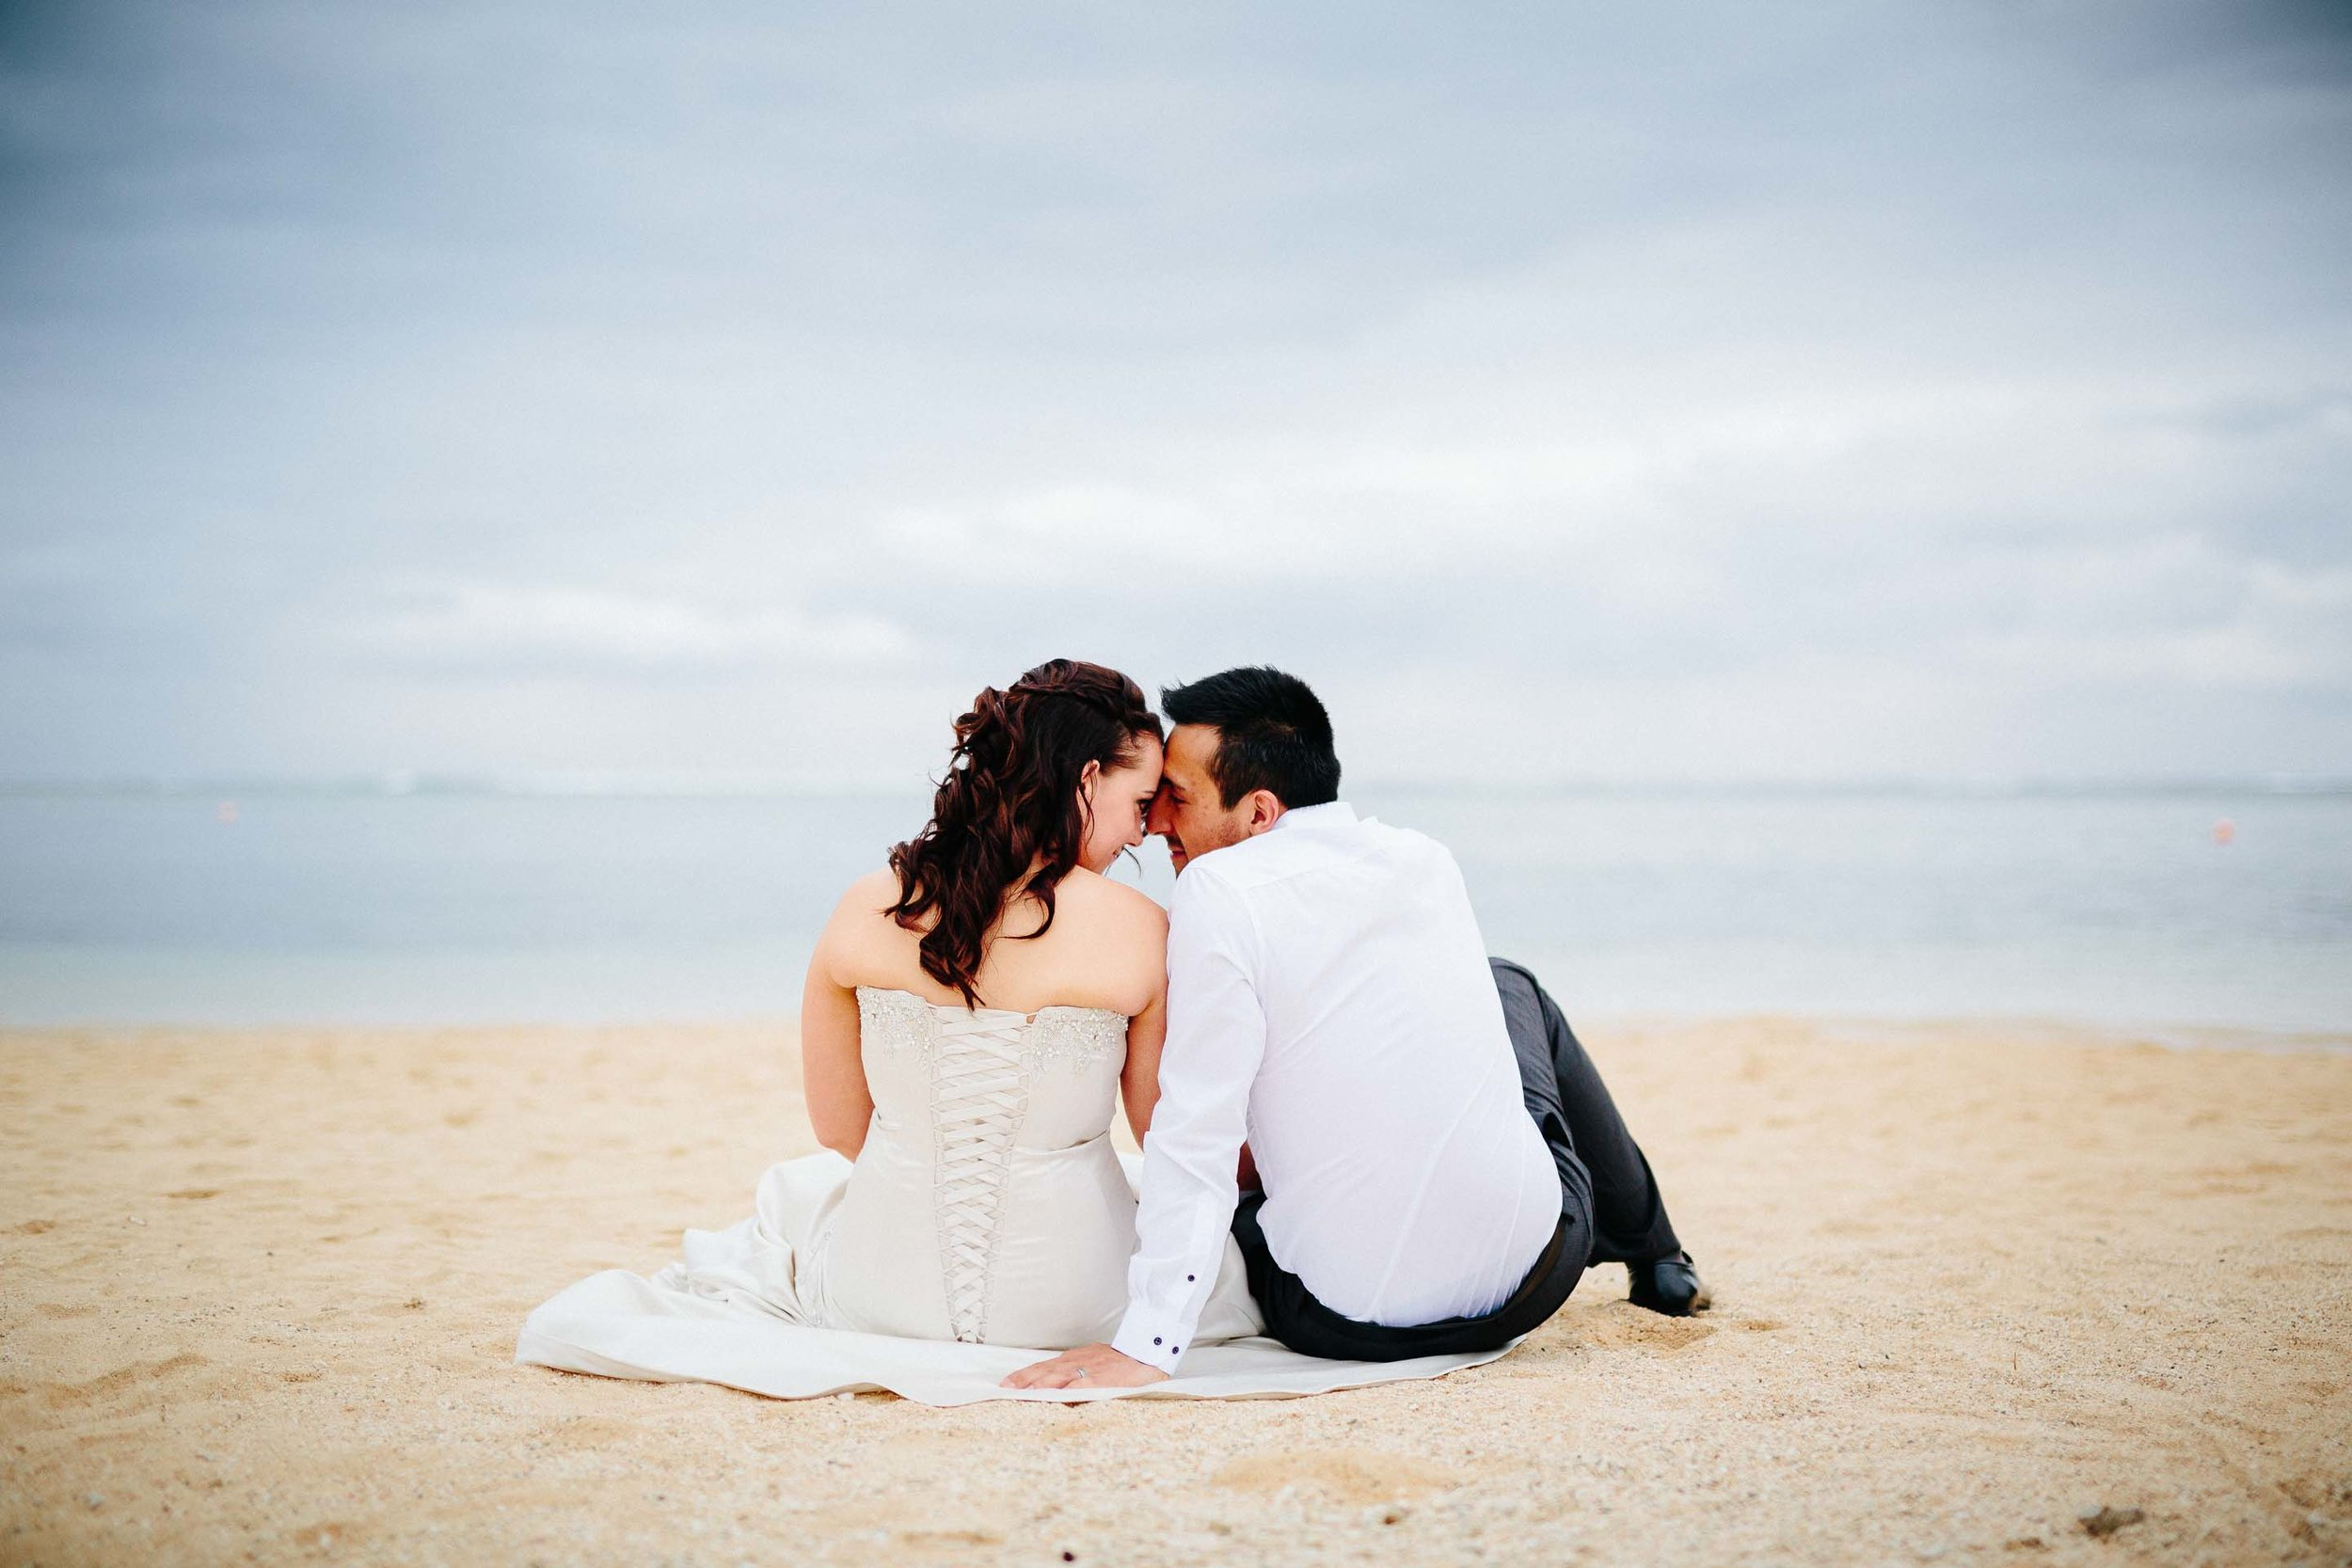 The newlyweds sitting on the beach